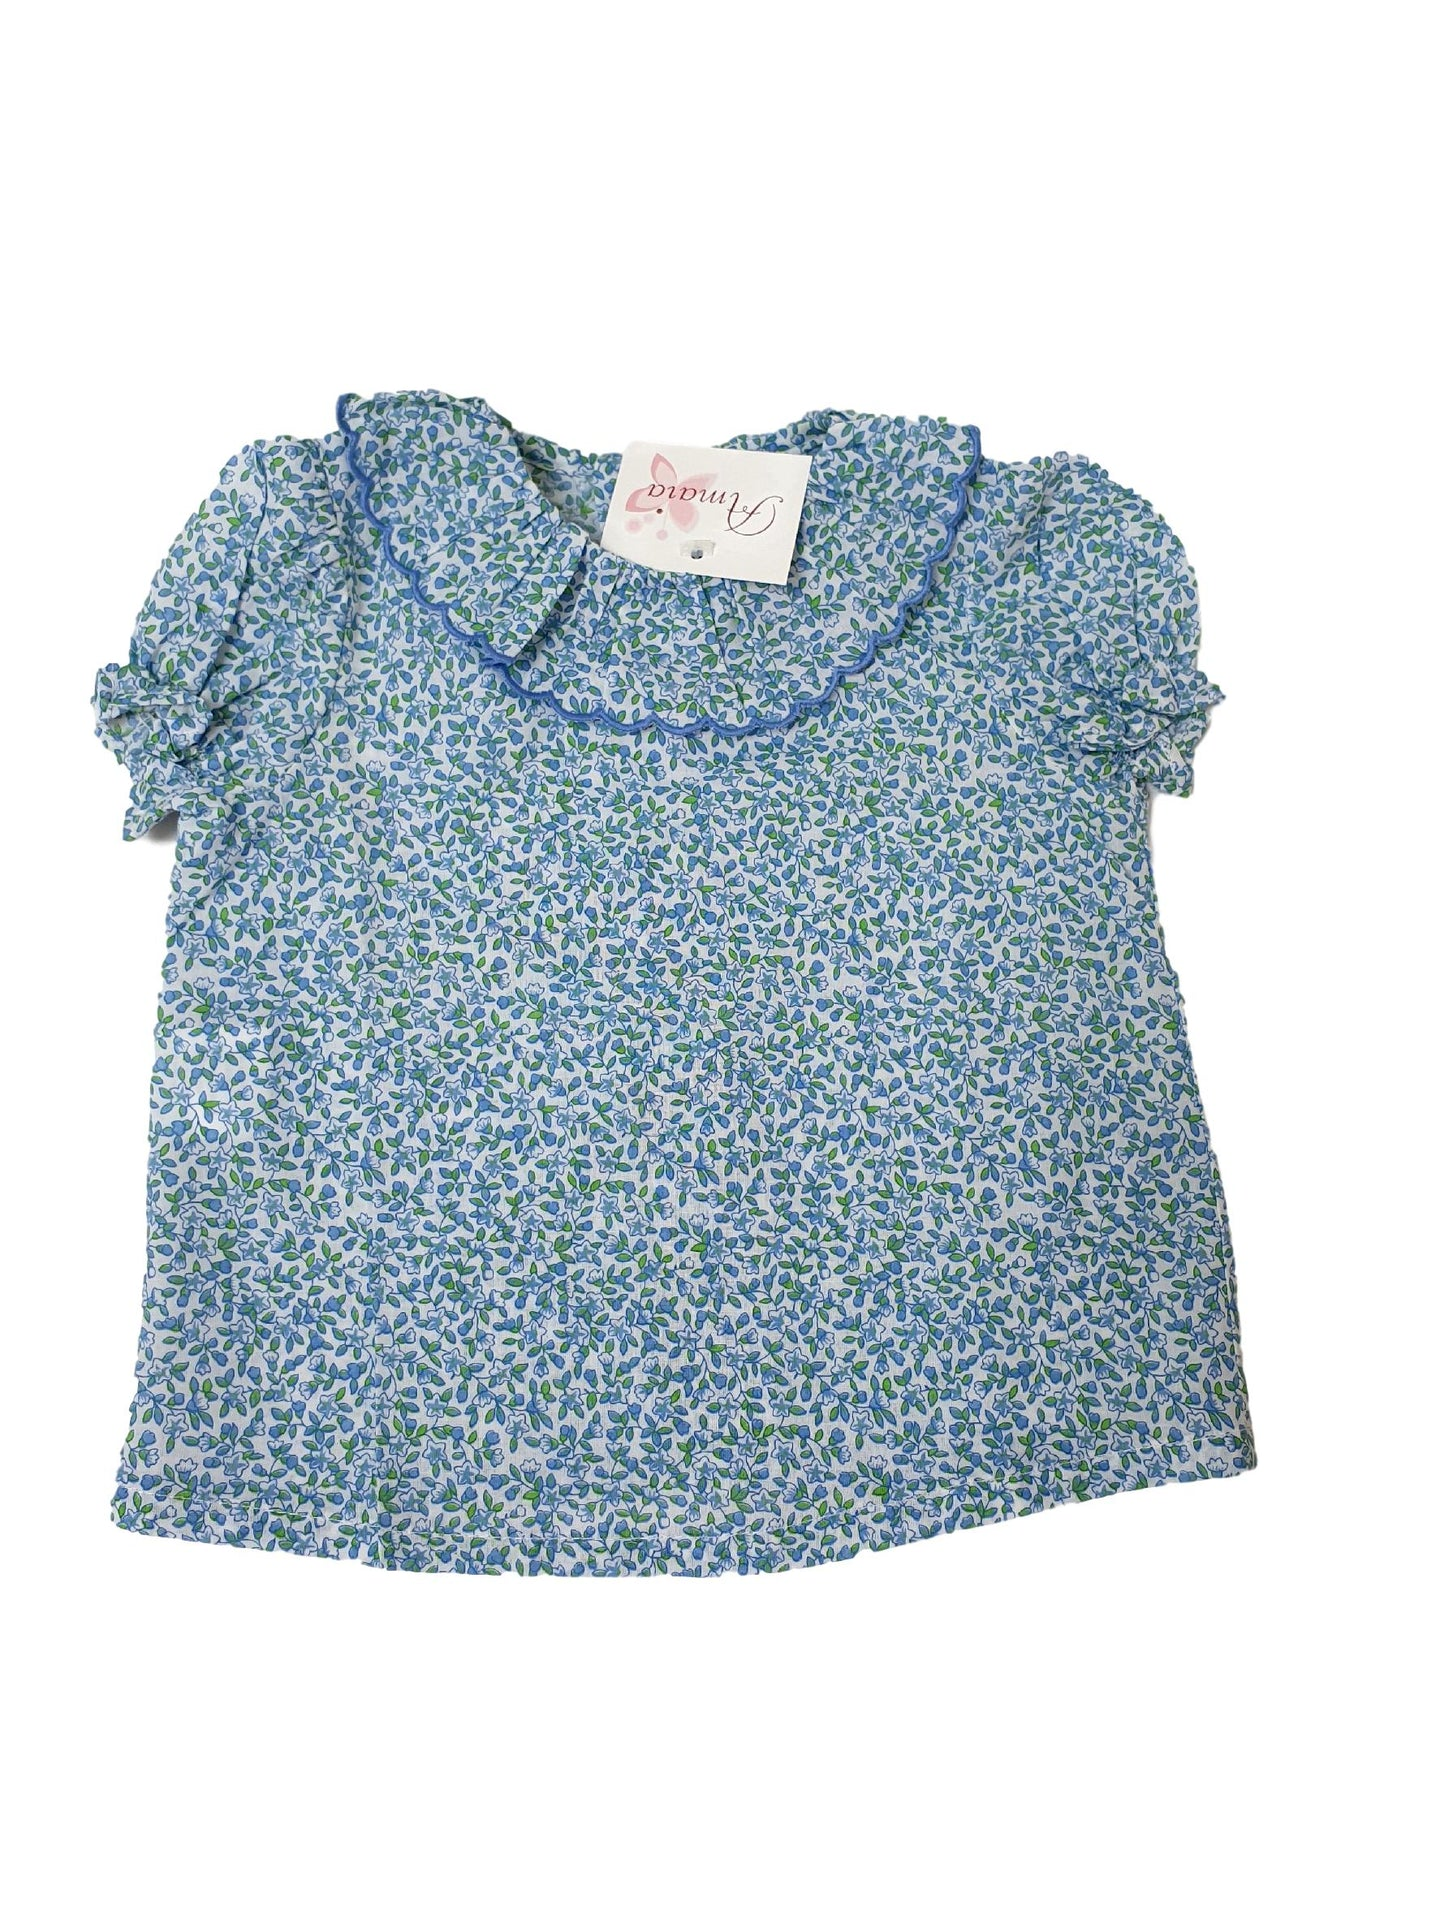 AMAIA outlet girl top